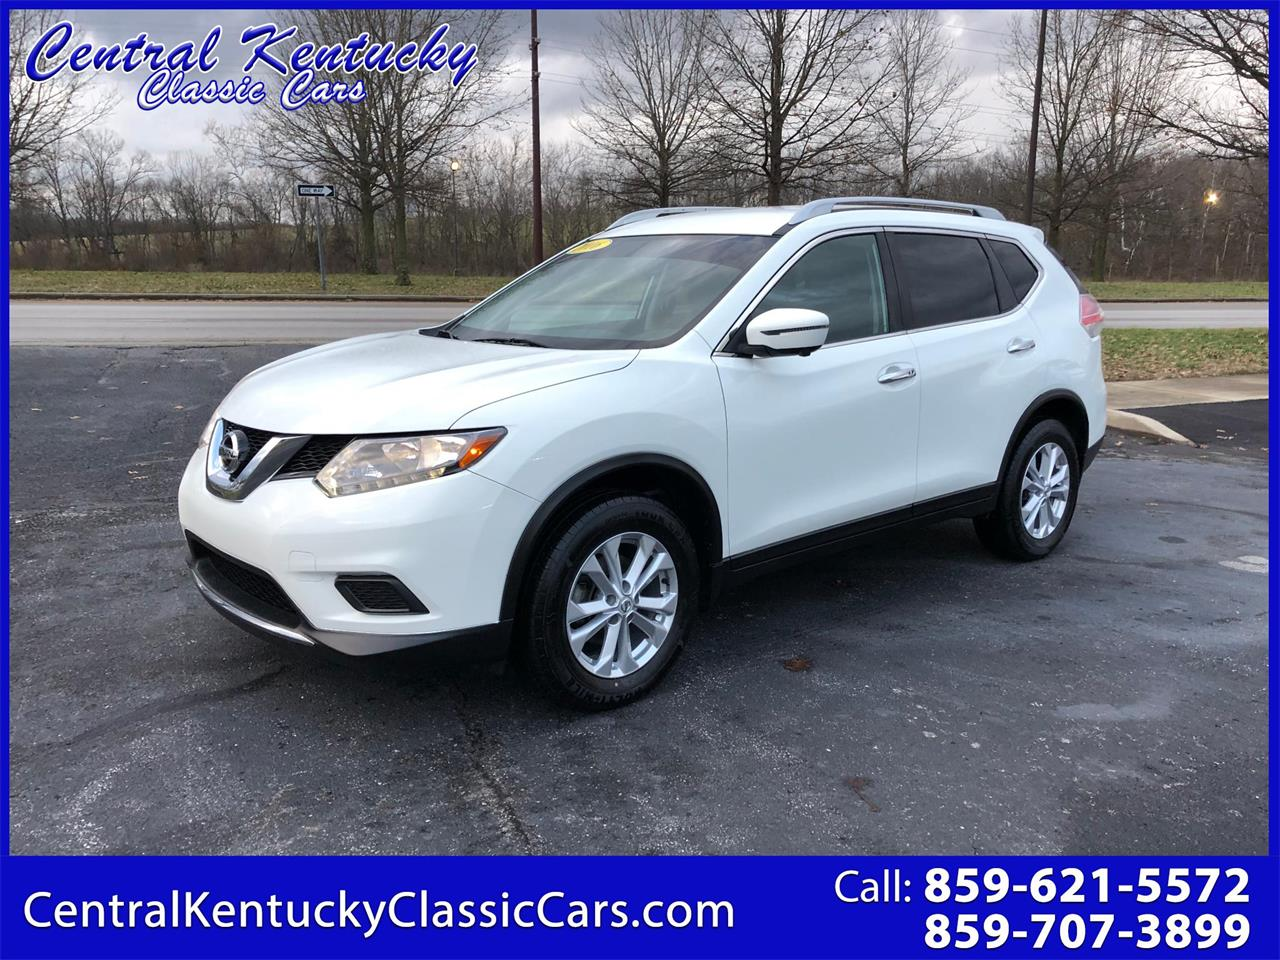 2016 Nissan Rogue (CC-1272139) for sale in Paris , Kentucky